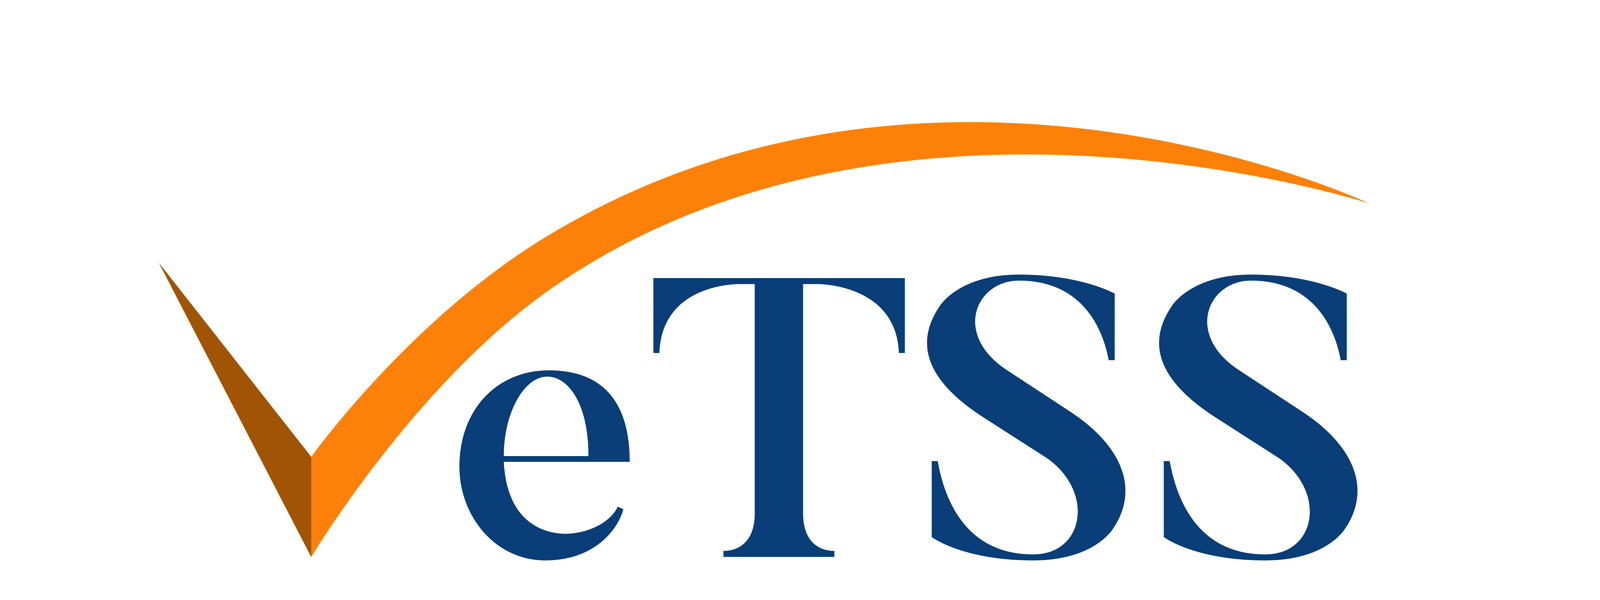 Research Institute in Automated Program Analysis and Verification (VeTSS)